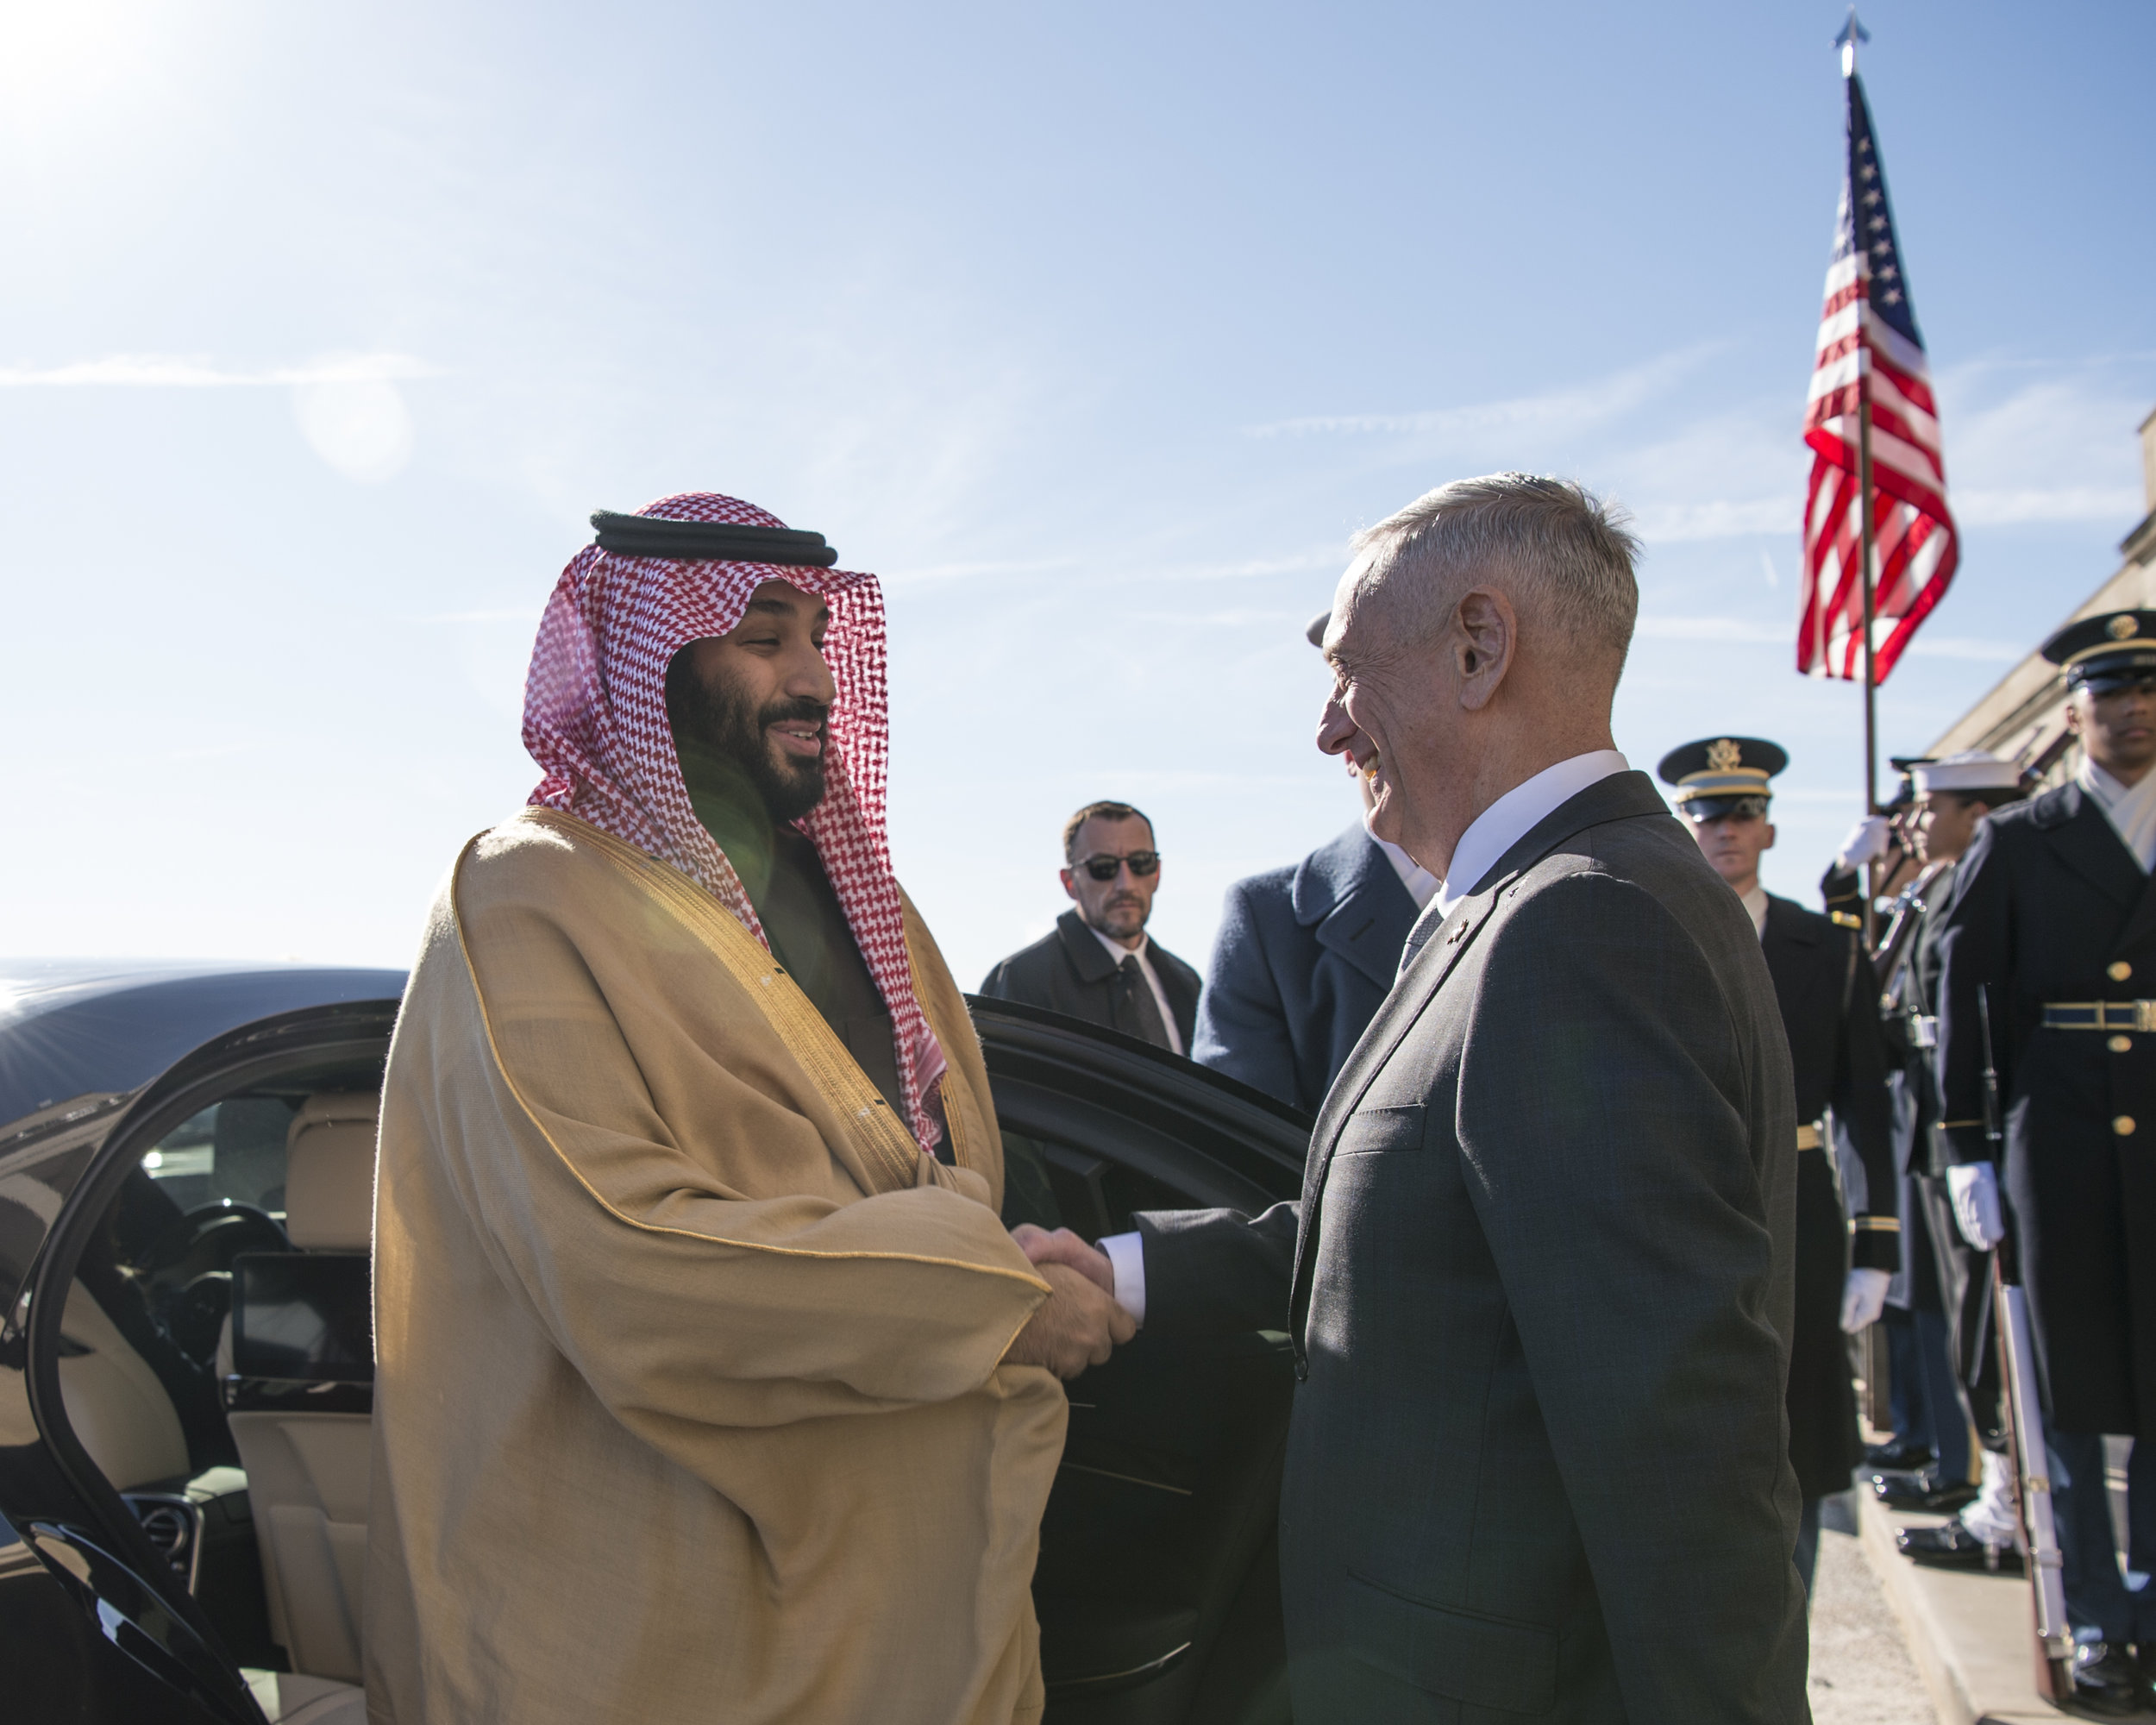 Saudi Crown Prince Mohammed bin Salman greets Secretary of Defense James Mattis earlier this year in Washington D.C. The Senate seems to have had it up to its bipartisan ears with the Trump Administration's defense of MbS, whom the CIA has implicated in the death of journalist Jamal Khashoggi. Photograph by Navy Mass Communication Specialist 1st Class Kathryn E. Holm.